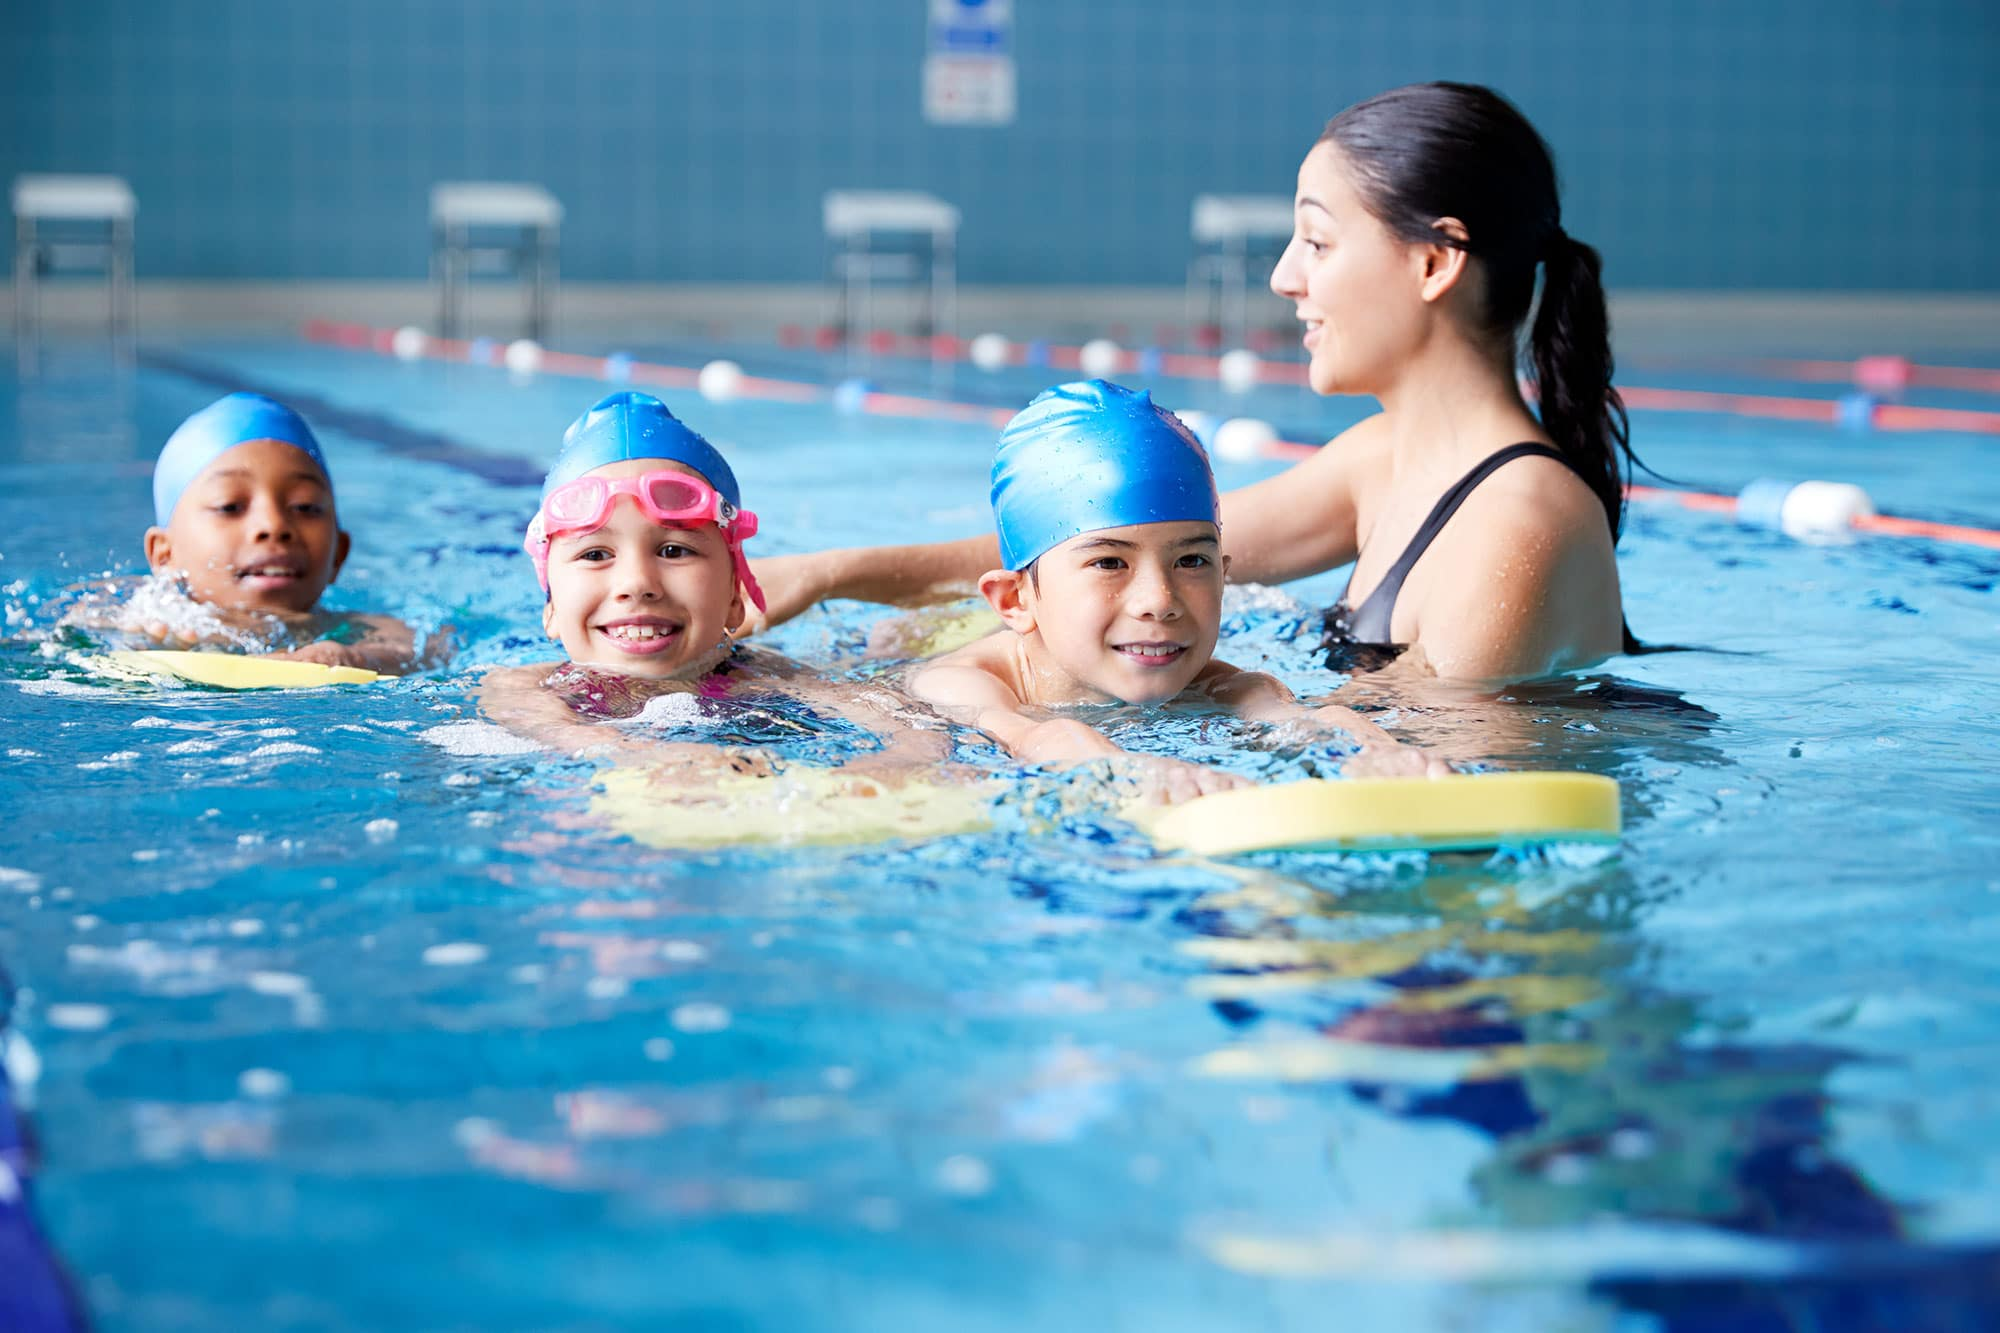 Could swimming pool closures lead to increased childhood morbidity and mortality?